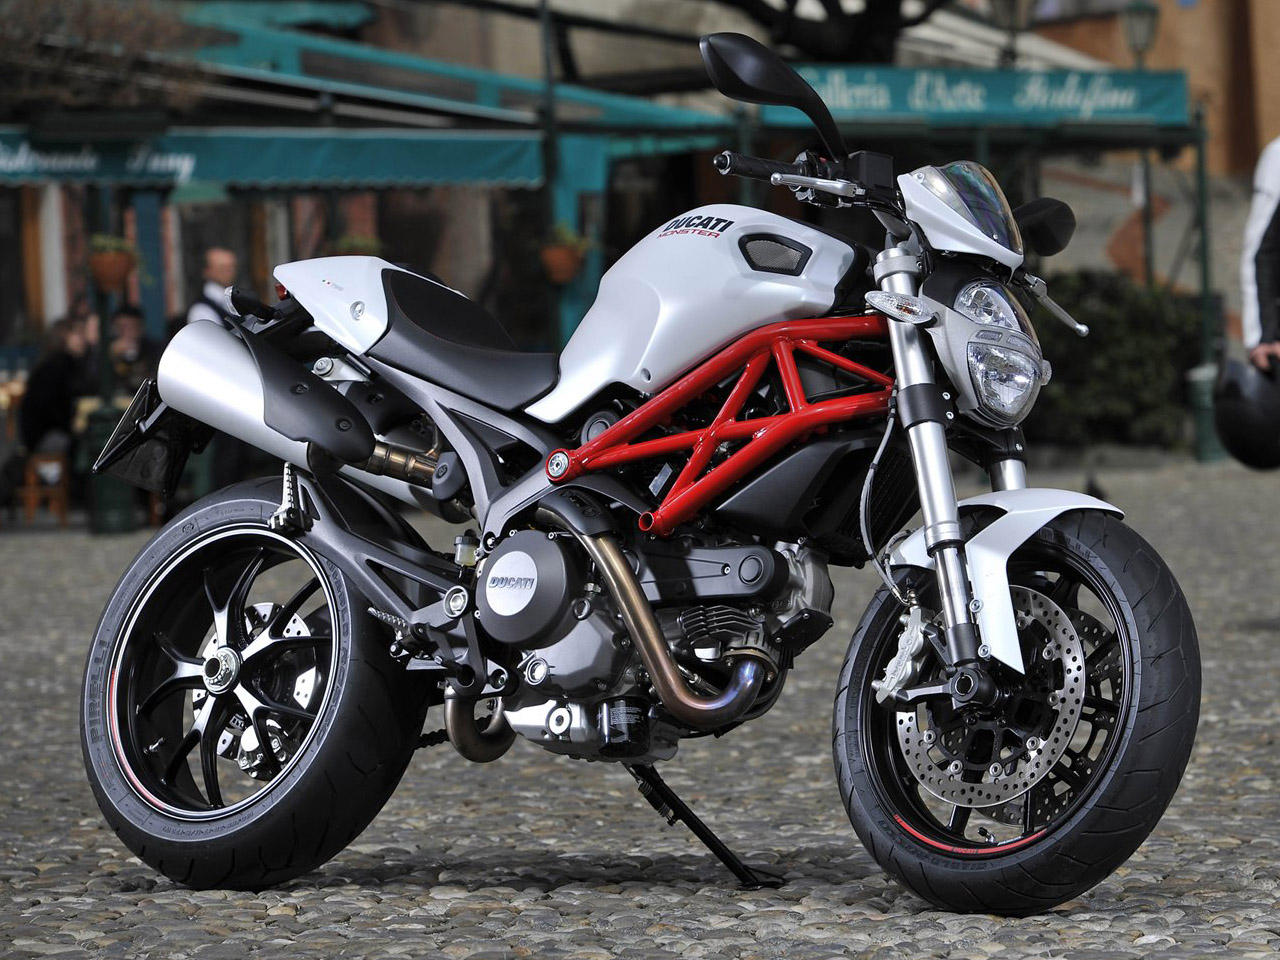 Ducati Bikes In Nepal Ducati Bikes now available in